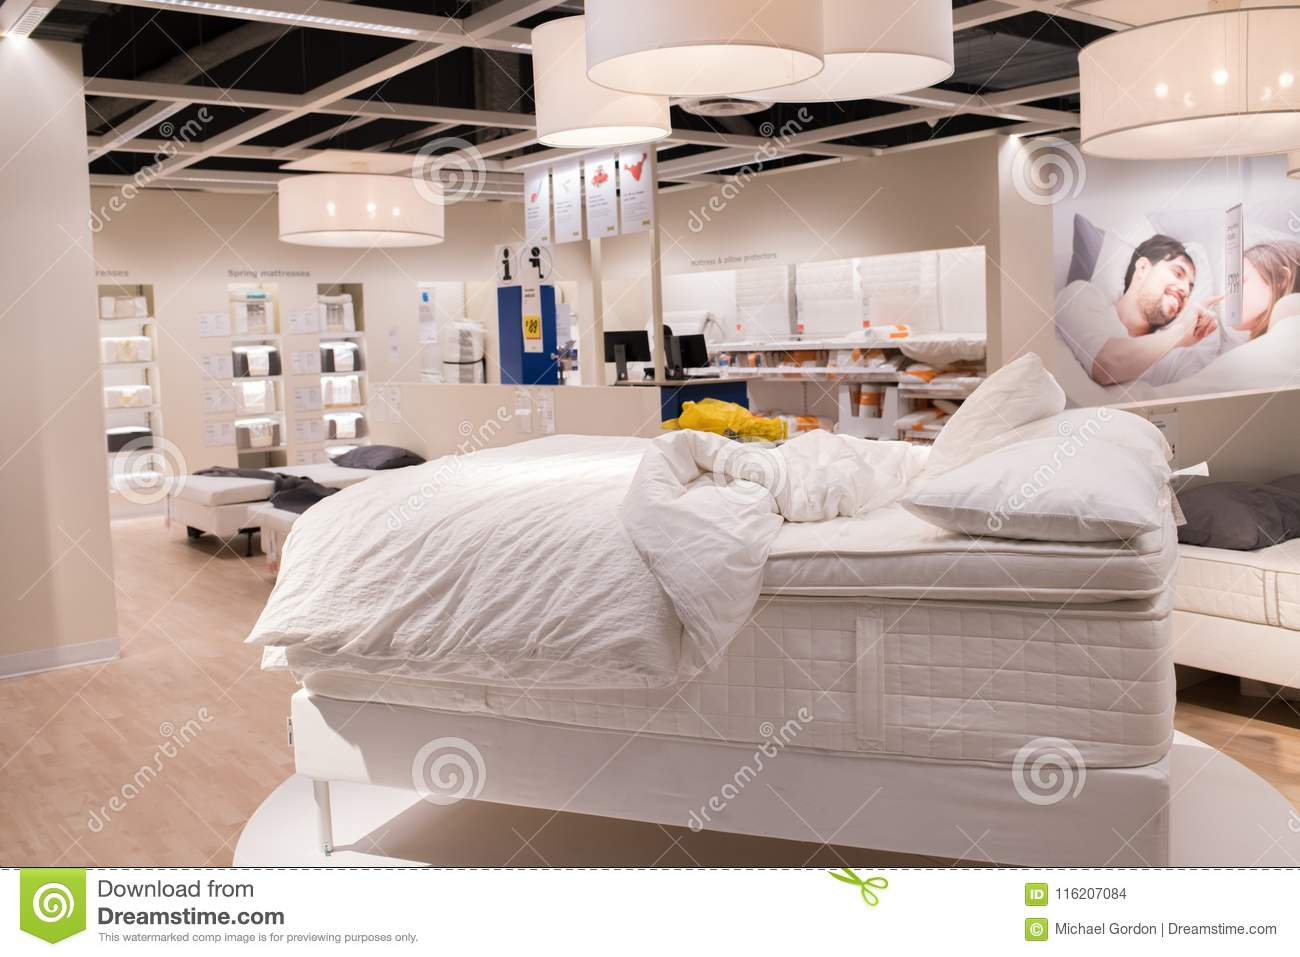 Interior Of An Ikea Store Editorial Stock Image Image Of Furniture